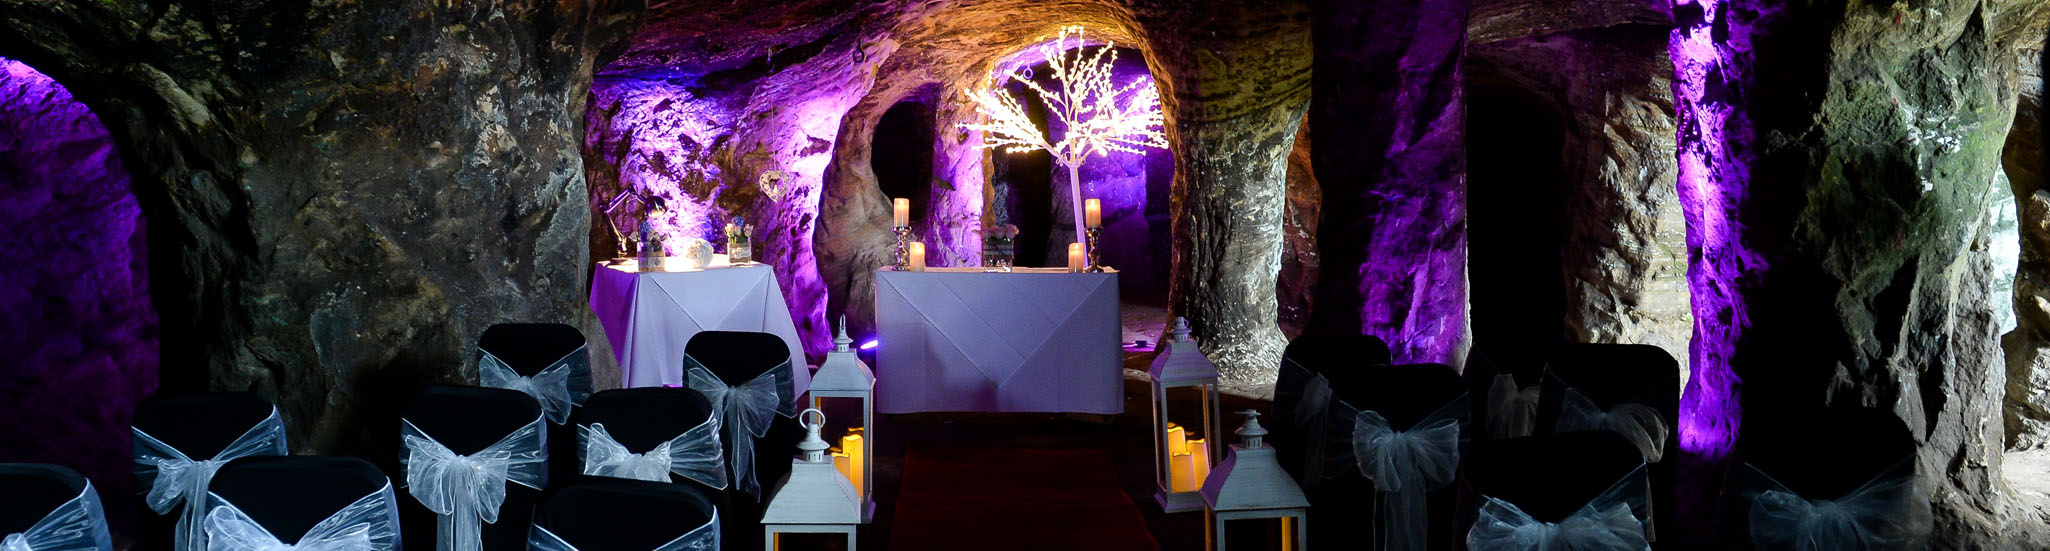 Wedding in the Grotto at Hawkstone Park Follies Shropshire